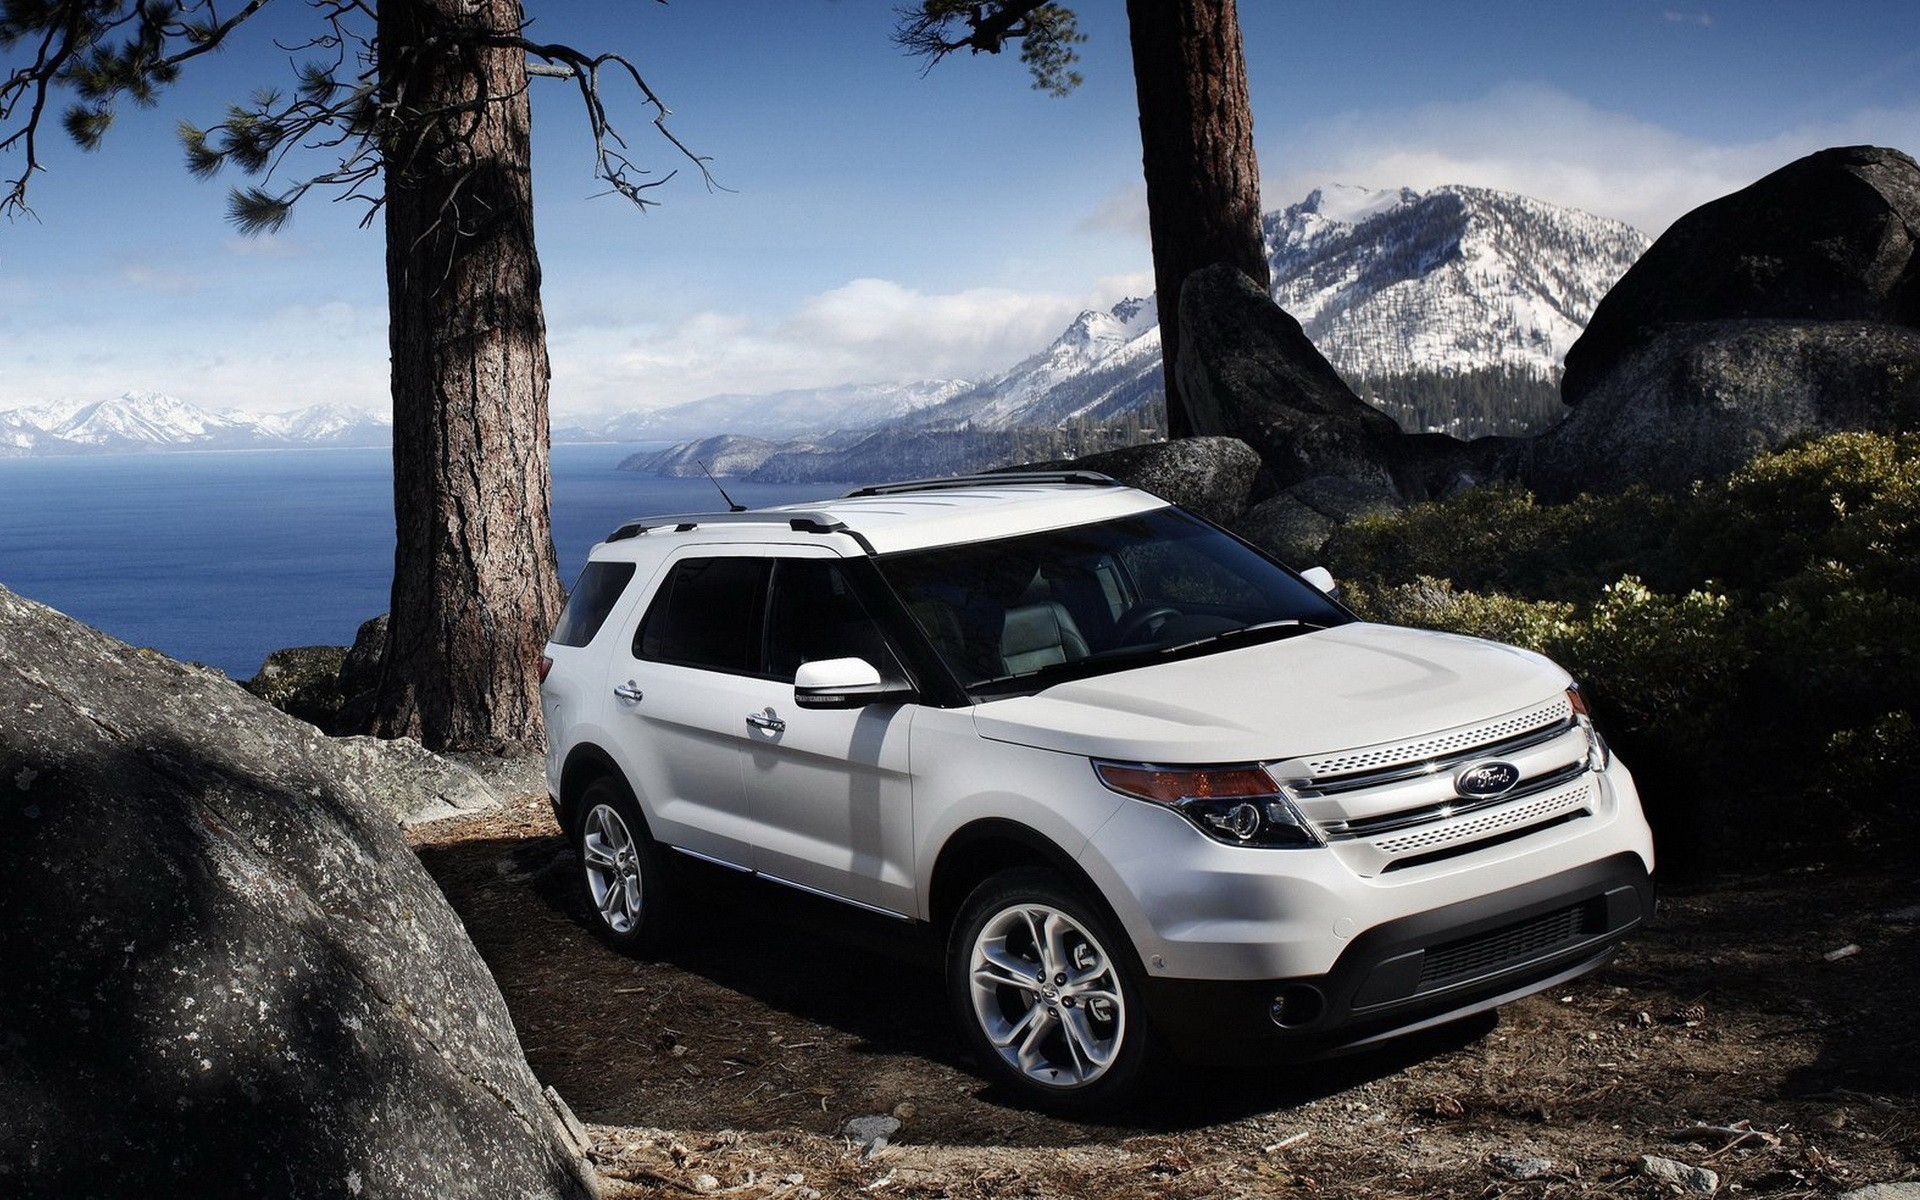 cars Ford ford explorer HD Wallpaper